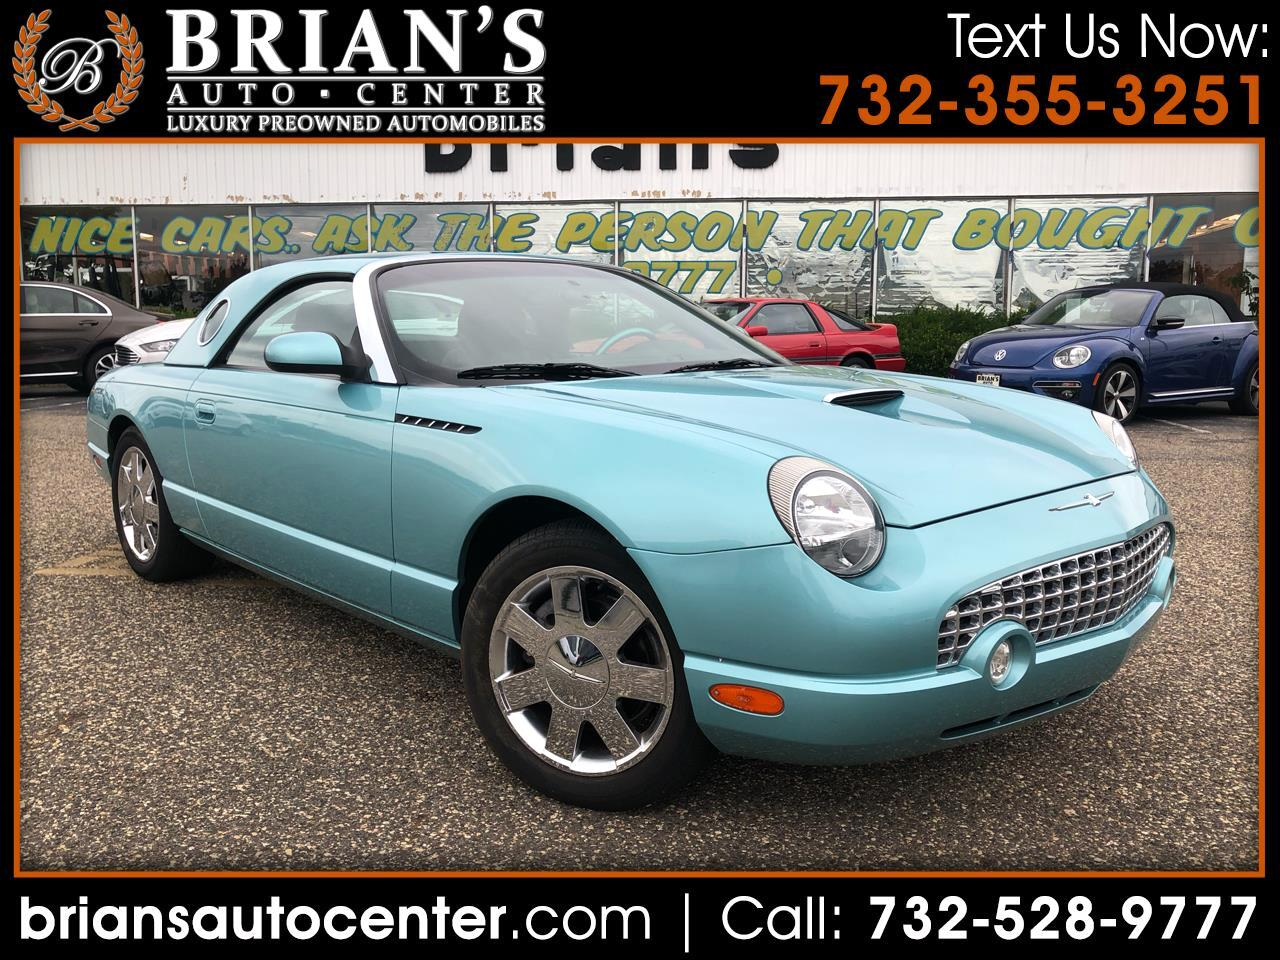 2002 Ford Thunderbird 2dr Conv w/Hardtop Deluxe